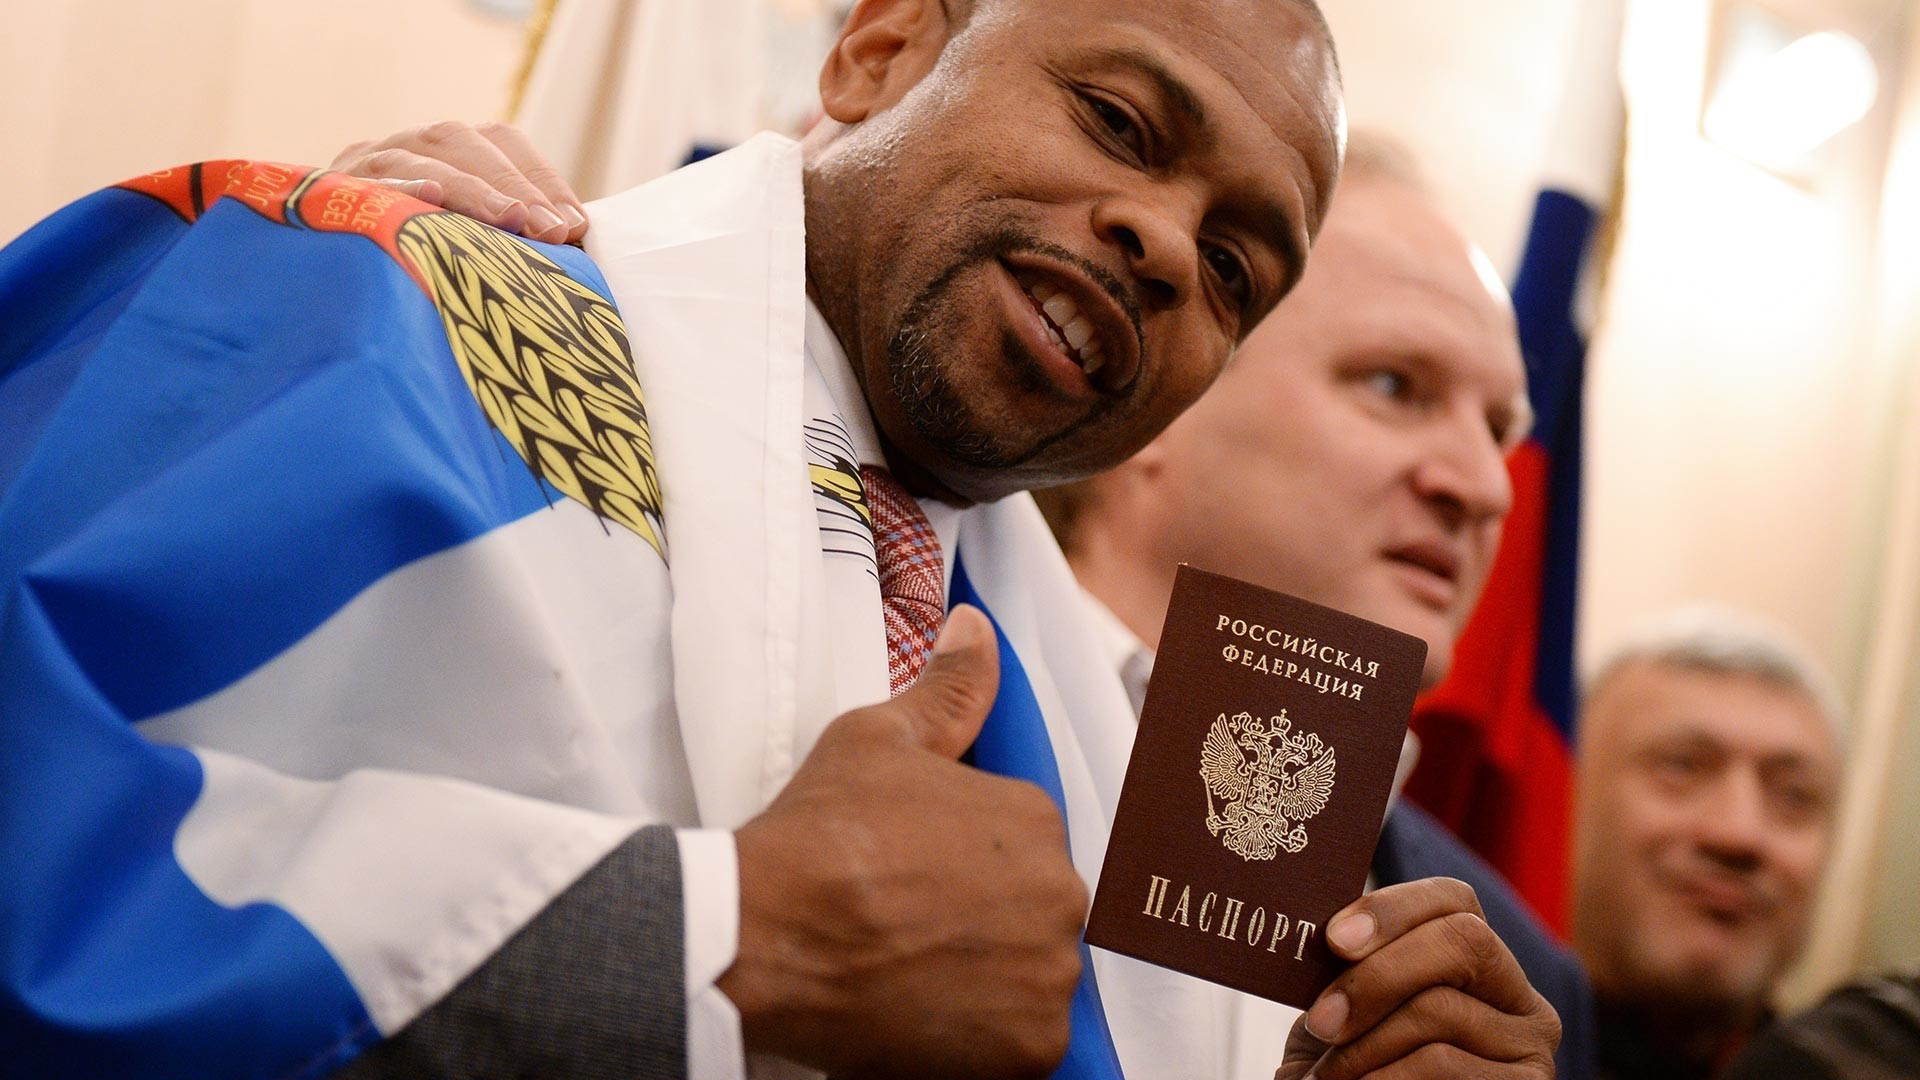 Roy Jones Jr. was one of the many foreign nationals who received a Russian passport in 2015.